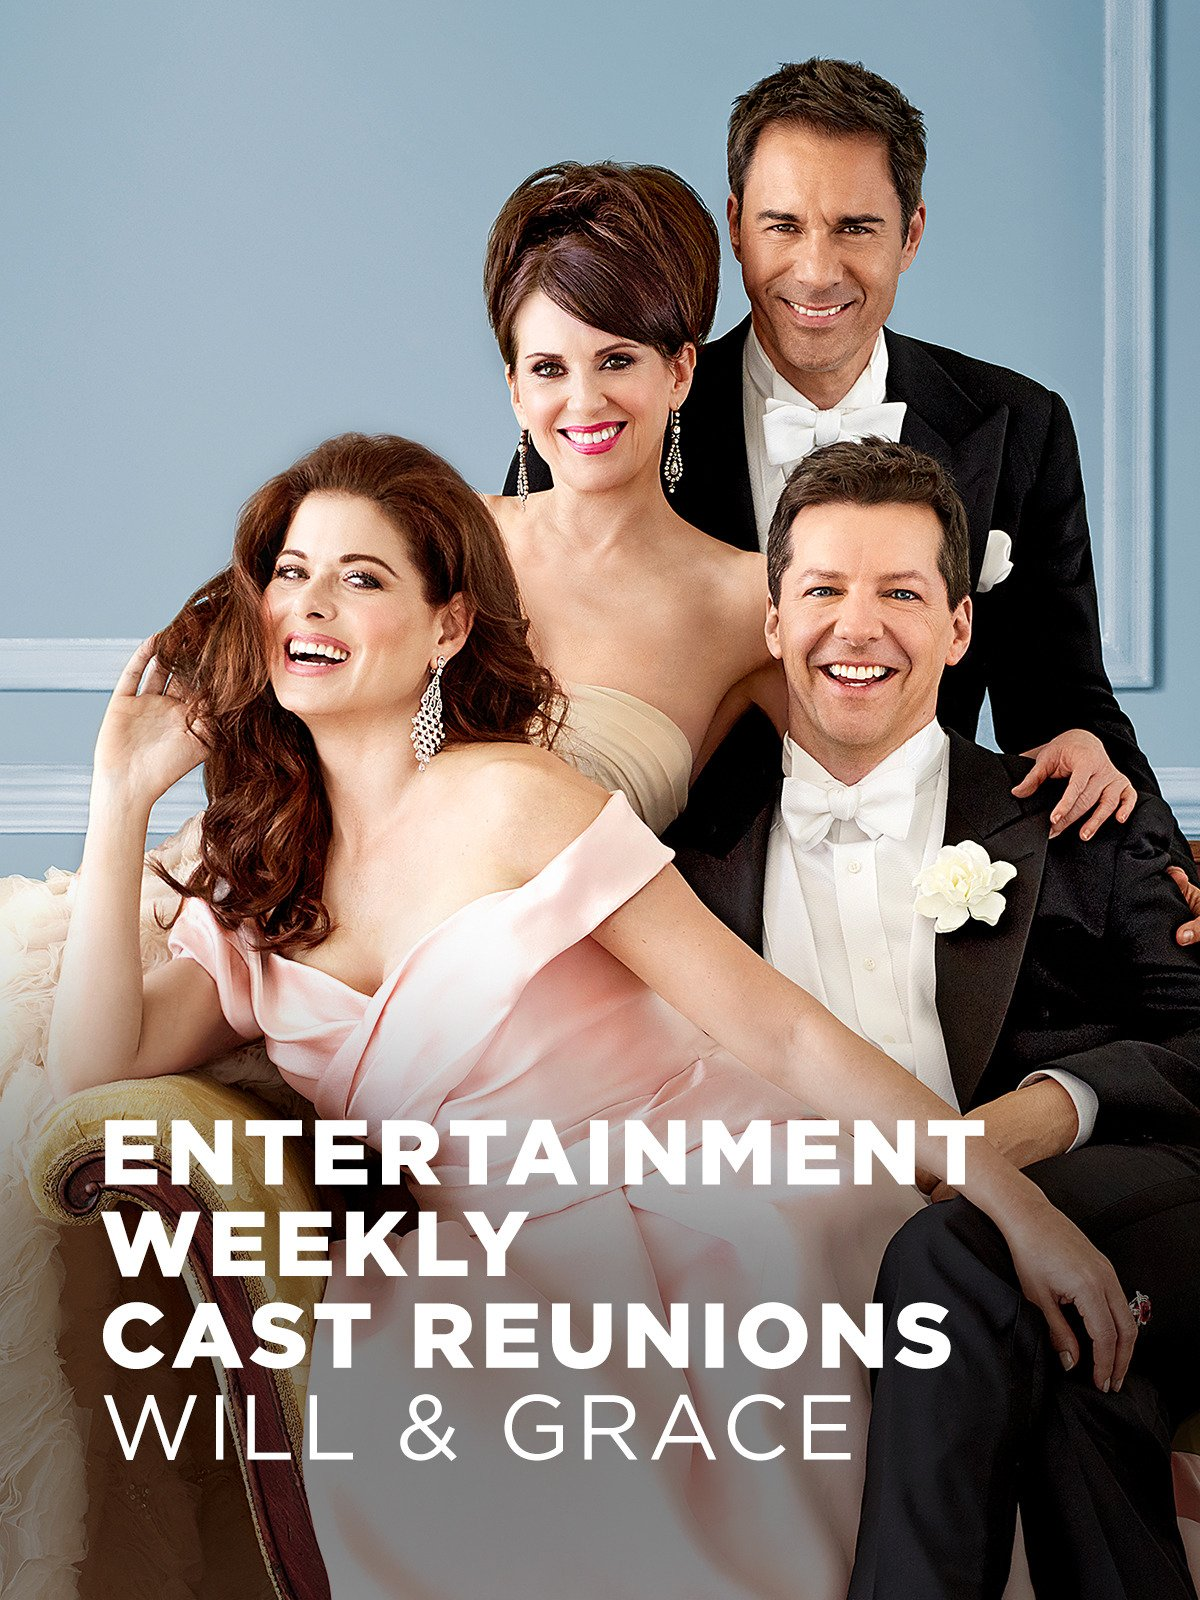 Entertainment Weekly Cast Reunions: Will and Grace